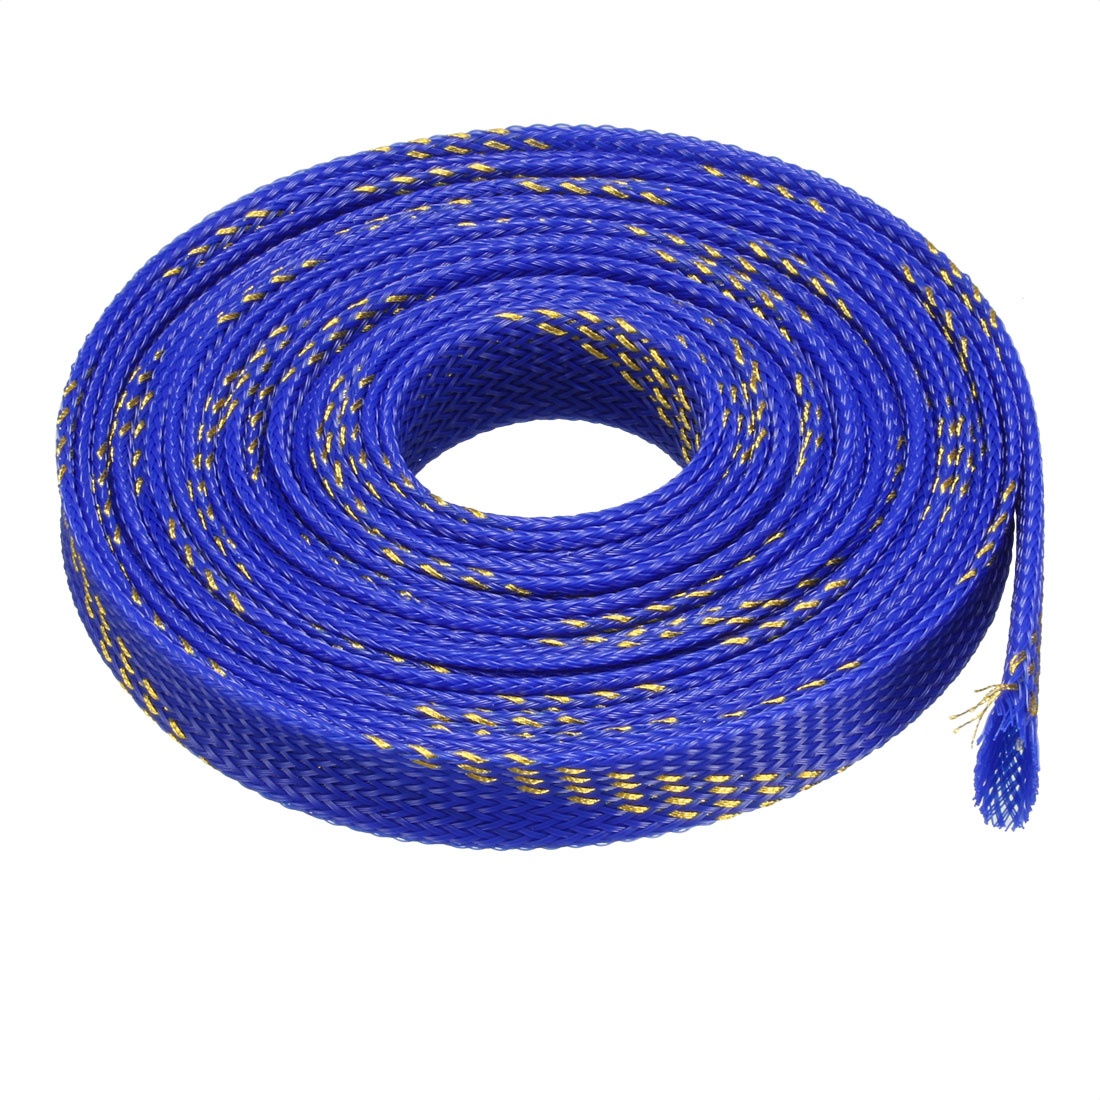 18mm Dia Tight Braided PET Expandable Sleeving Cable Wrap Sheath Golden Blue 16Ft